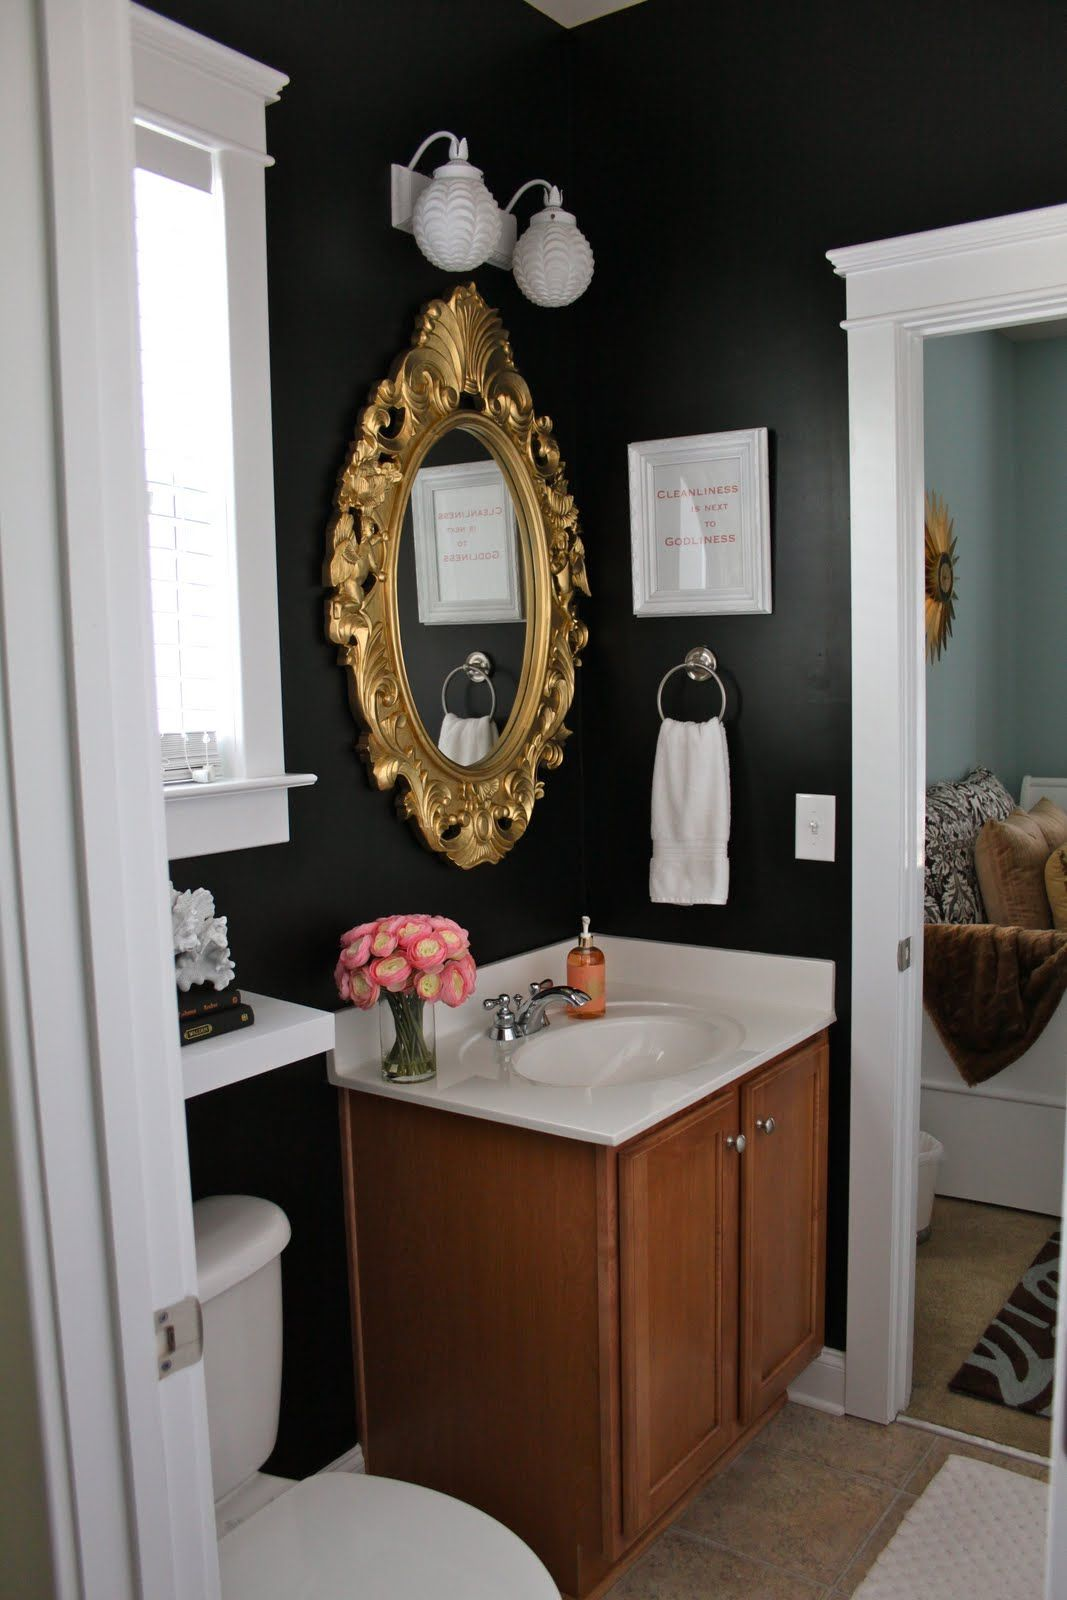 Framing A Bathroom Mirror Before And After room decorating before and after makeovers | gold framed mirror